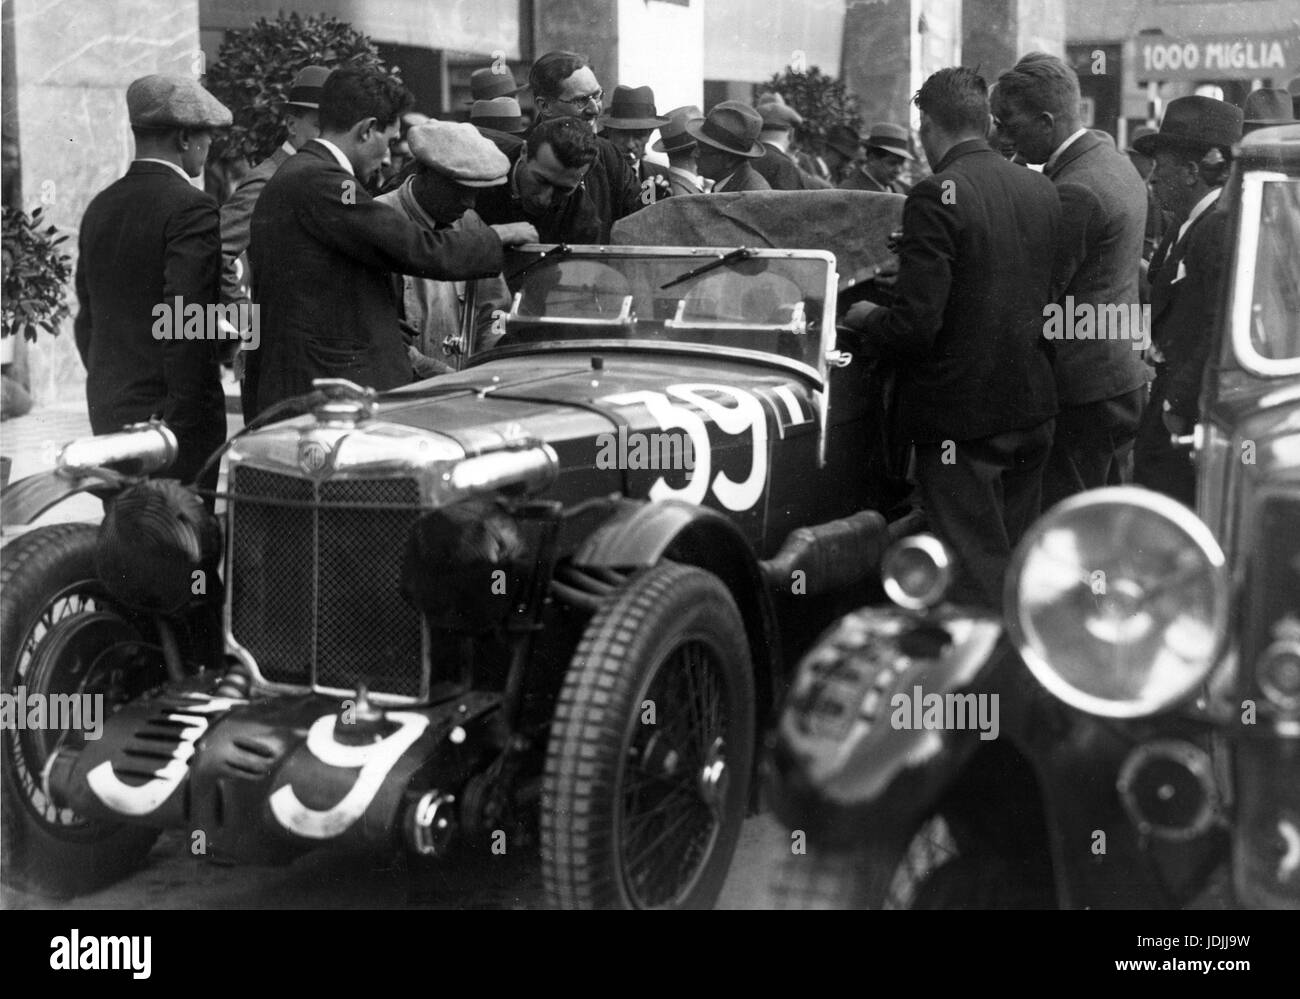 1933 MG K3 Magnette in Mille Miglia driven by George Eyston and Count Lurani, who won their class. - Stock Image